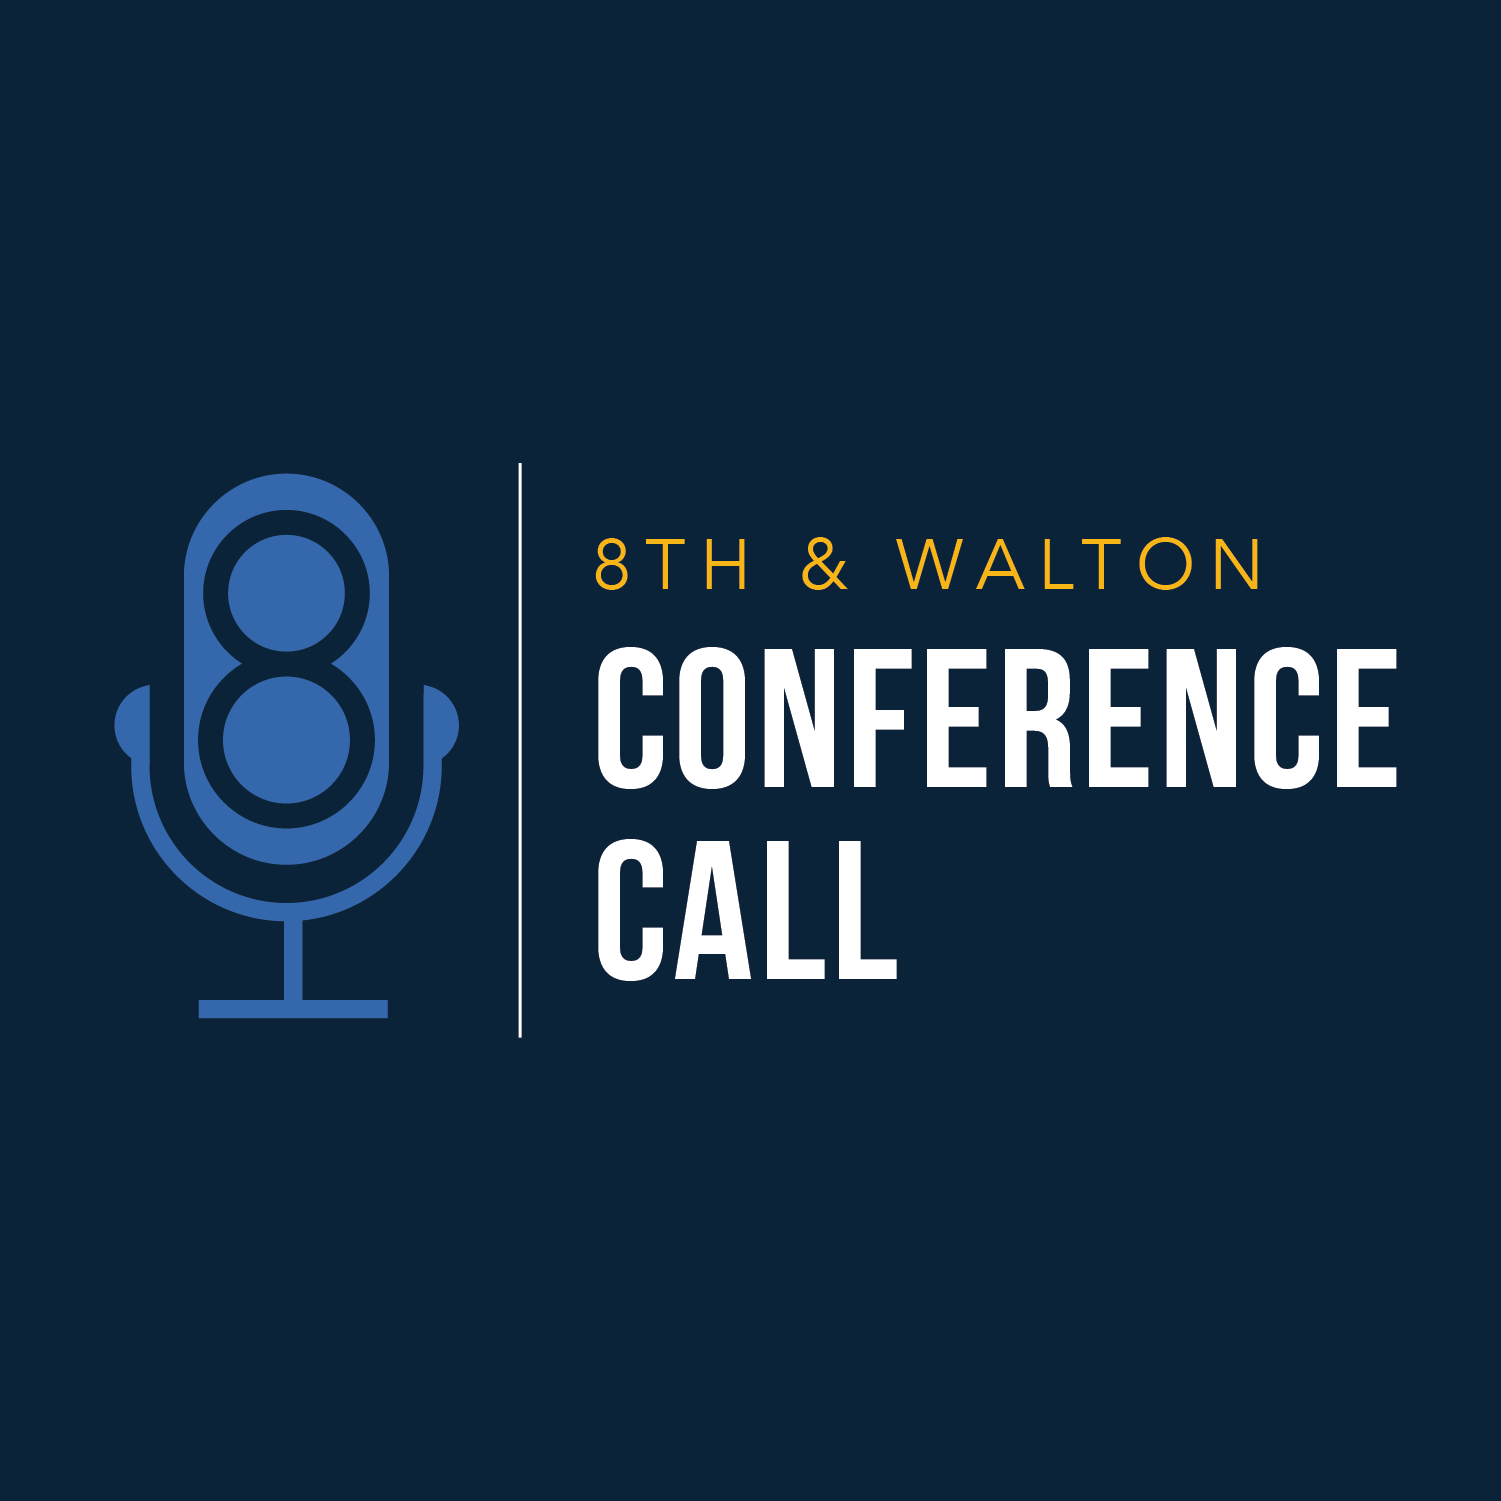 The 8th & Walton Conference Call